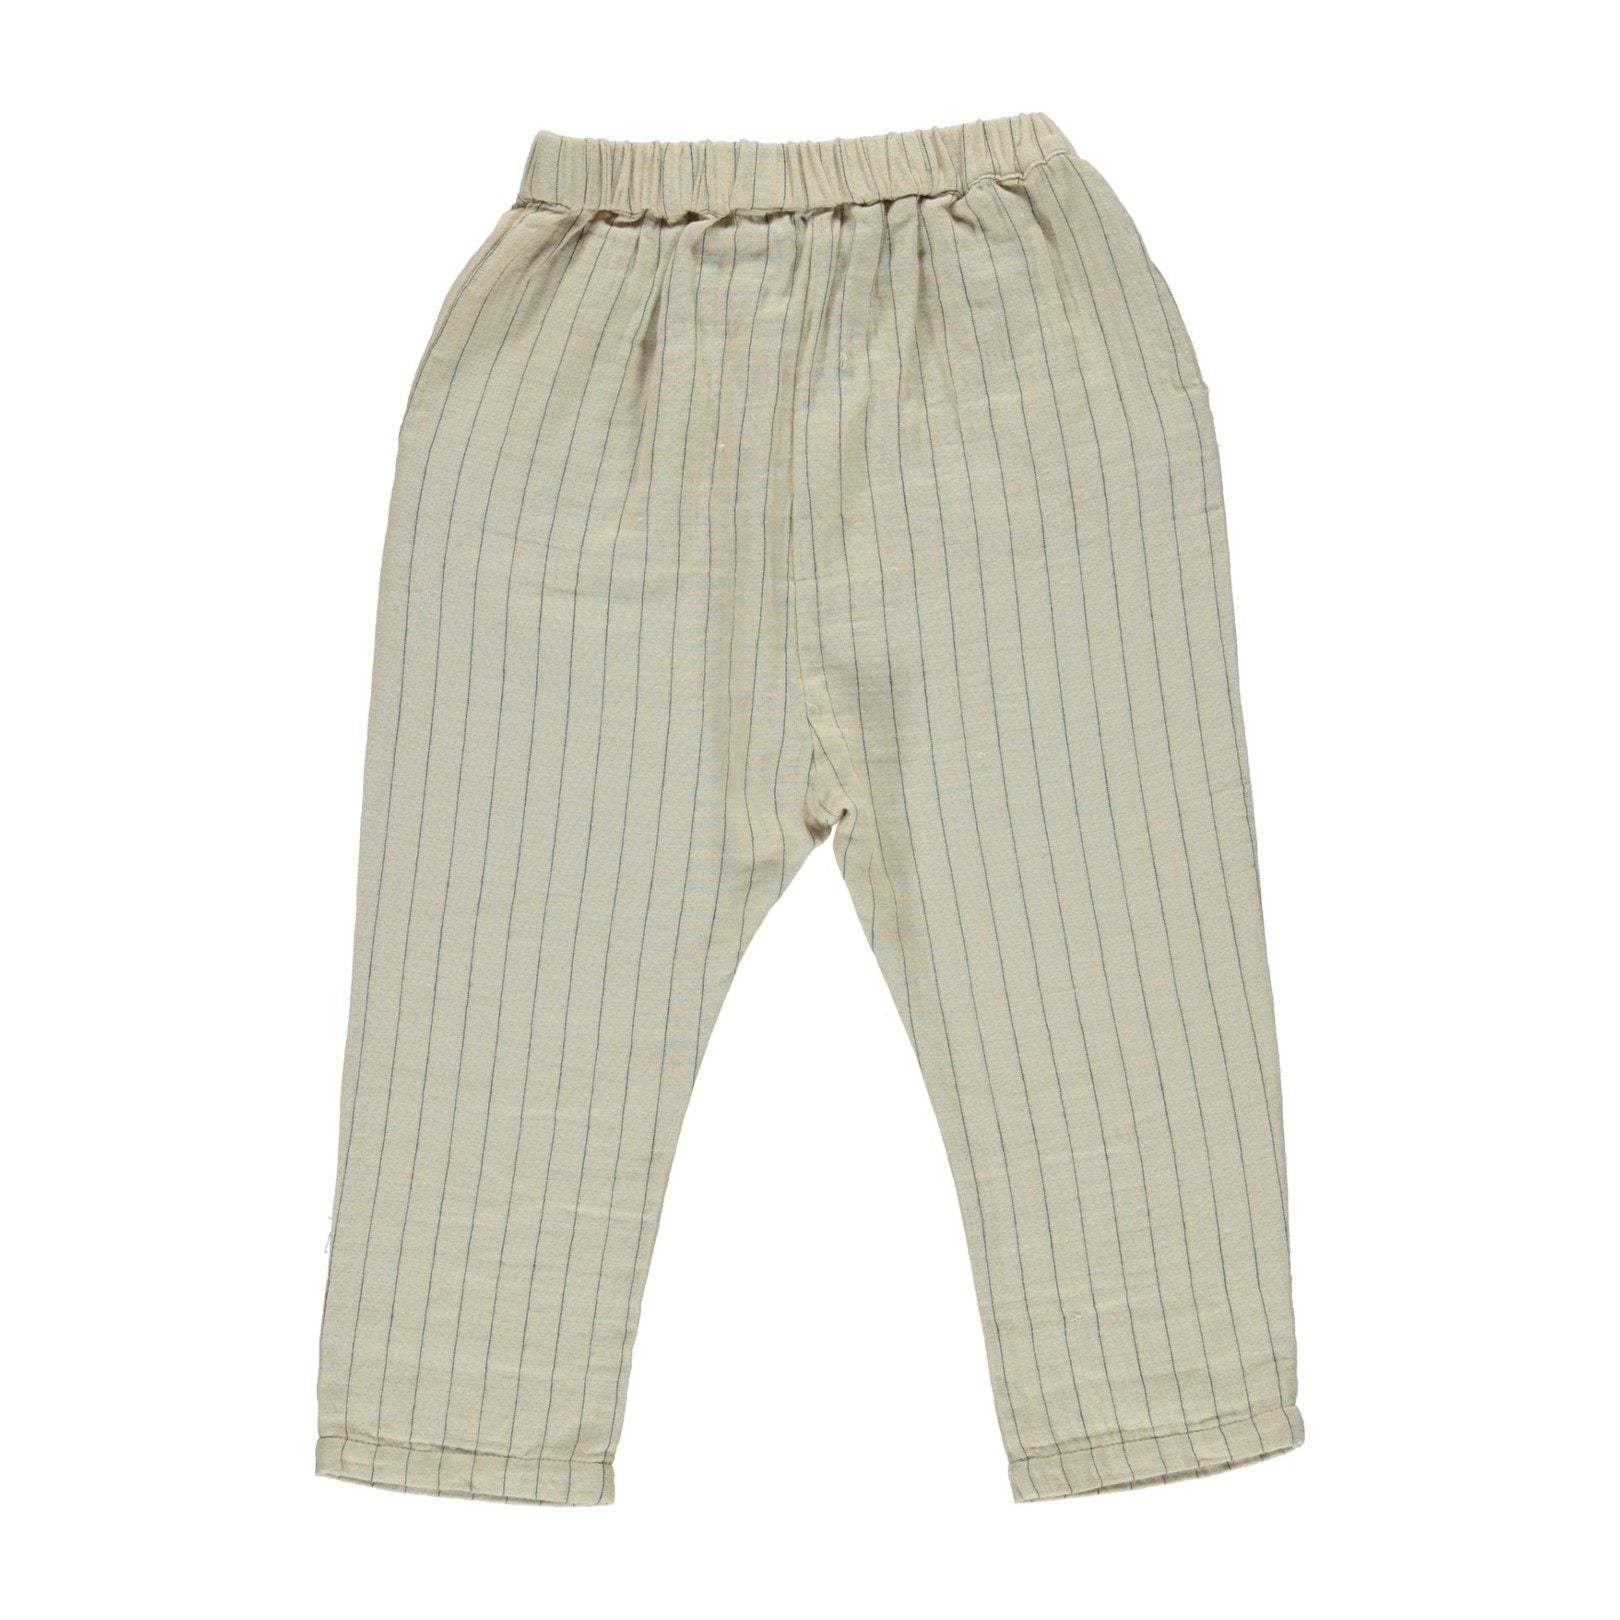 BEBE ORGANIC 'KARL' PANTS, STRIPE - Spinel Boutique